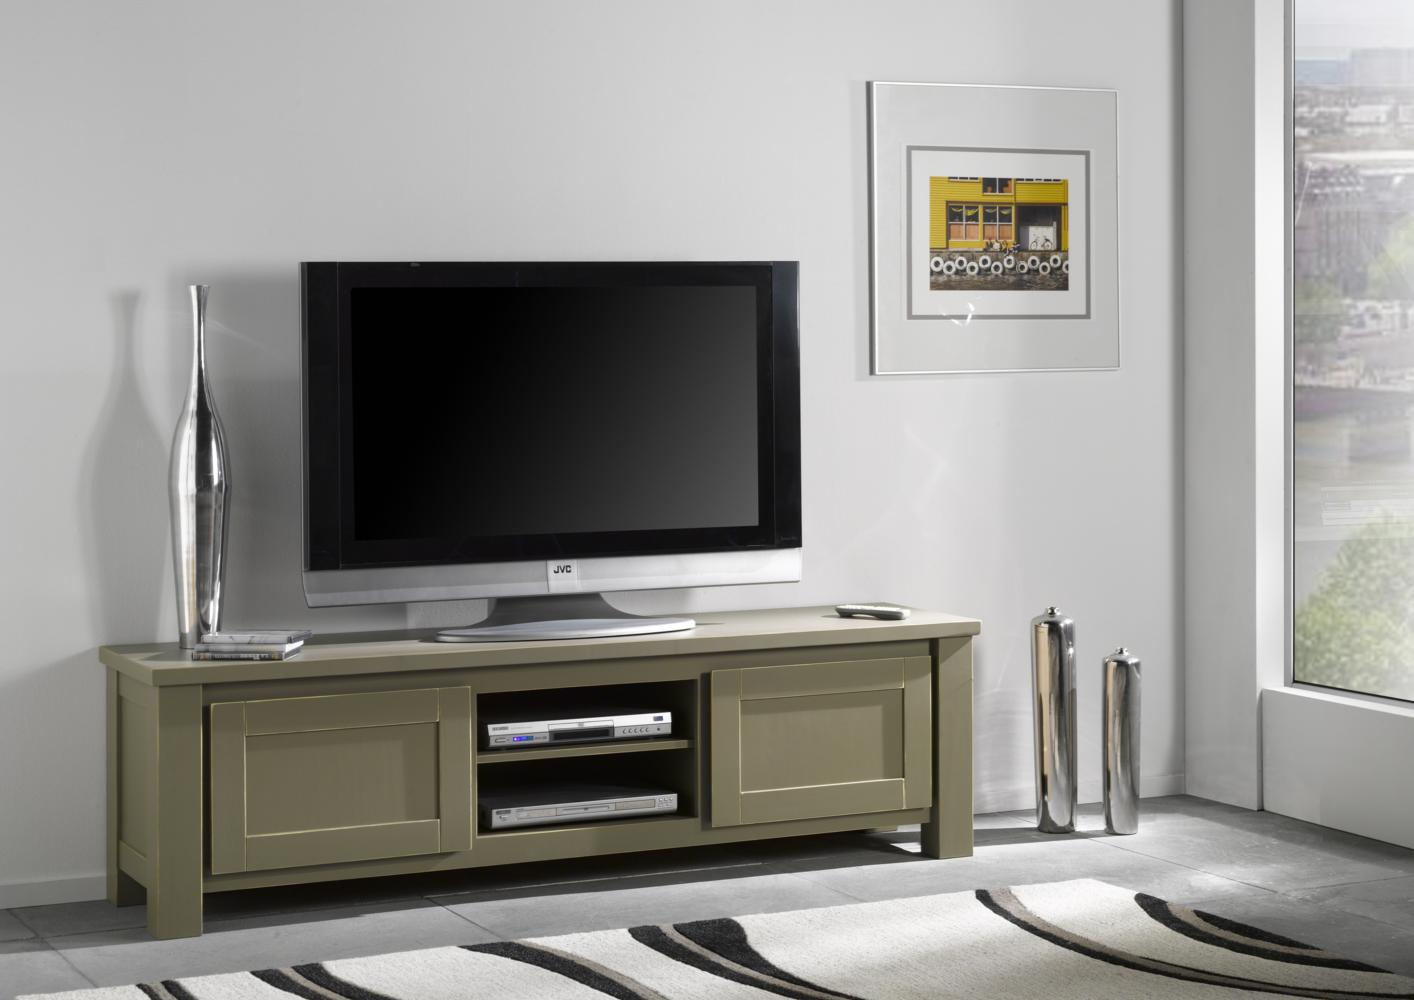 acheter votre meuble tv bas 4 niches 1 porte chez simeuble. Black Bedroom Furniture Sets. Home Design Ideas